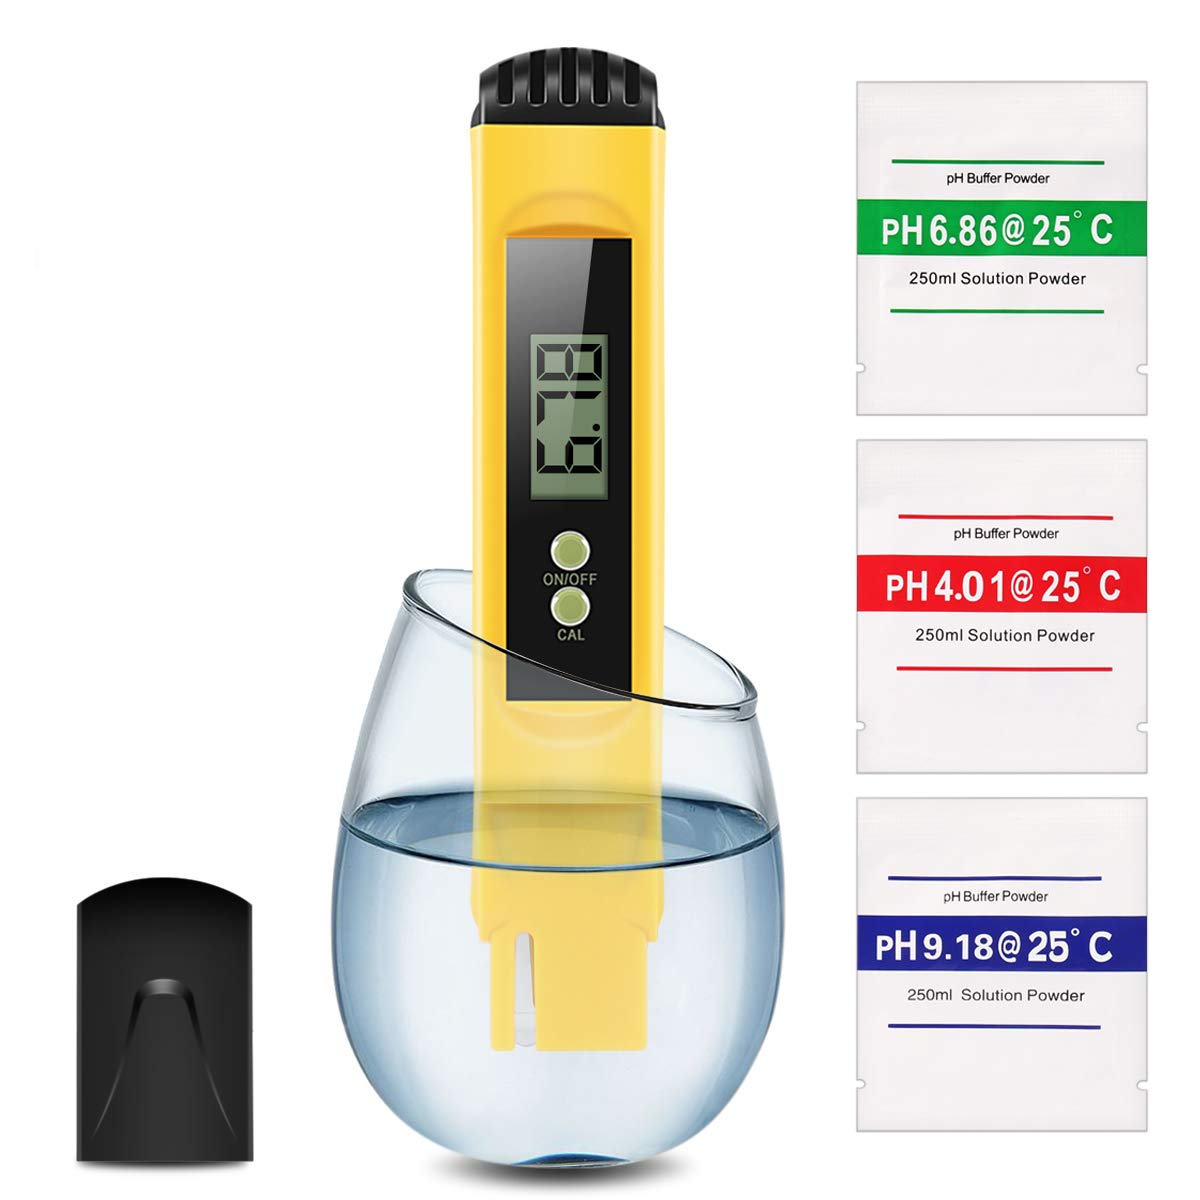 Digital PH Meter, Water Quality Tester 0.01 PH High Accuracy and 0-14 PH Measurement Range, Ideal Water Test Meter for Household Drinking Water, Aquariums, ATC by Pop V